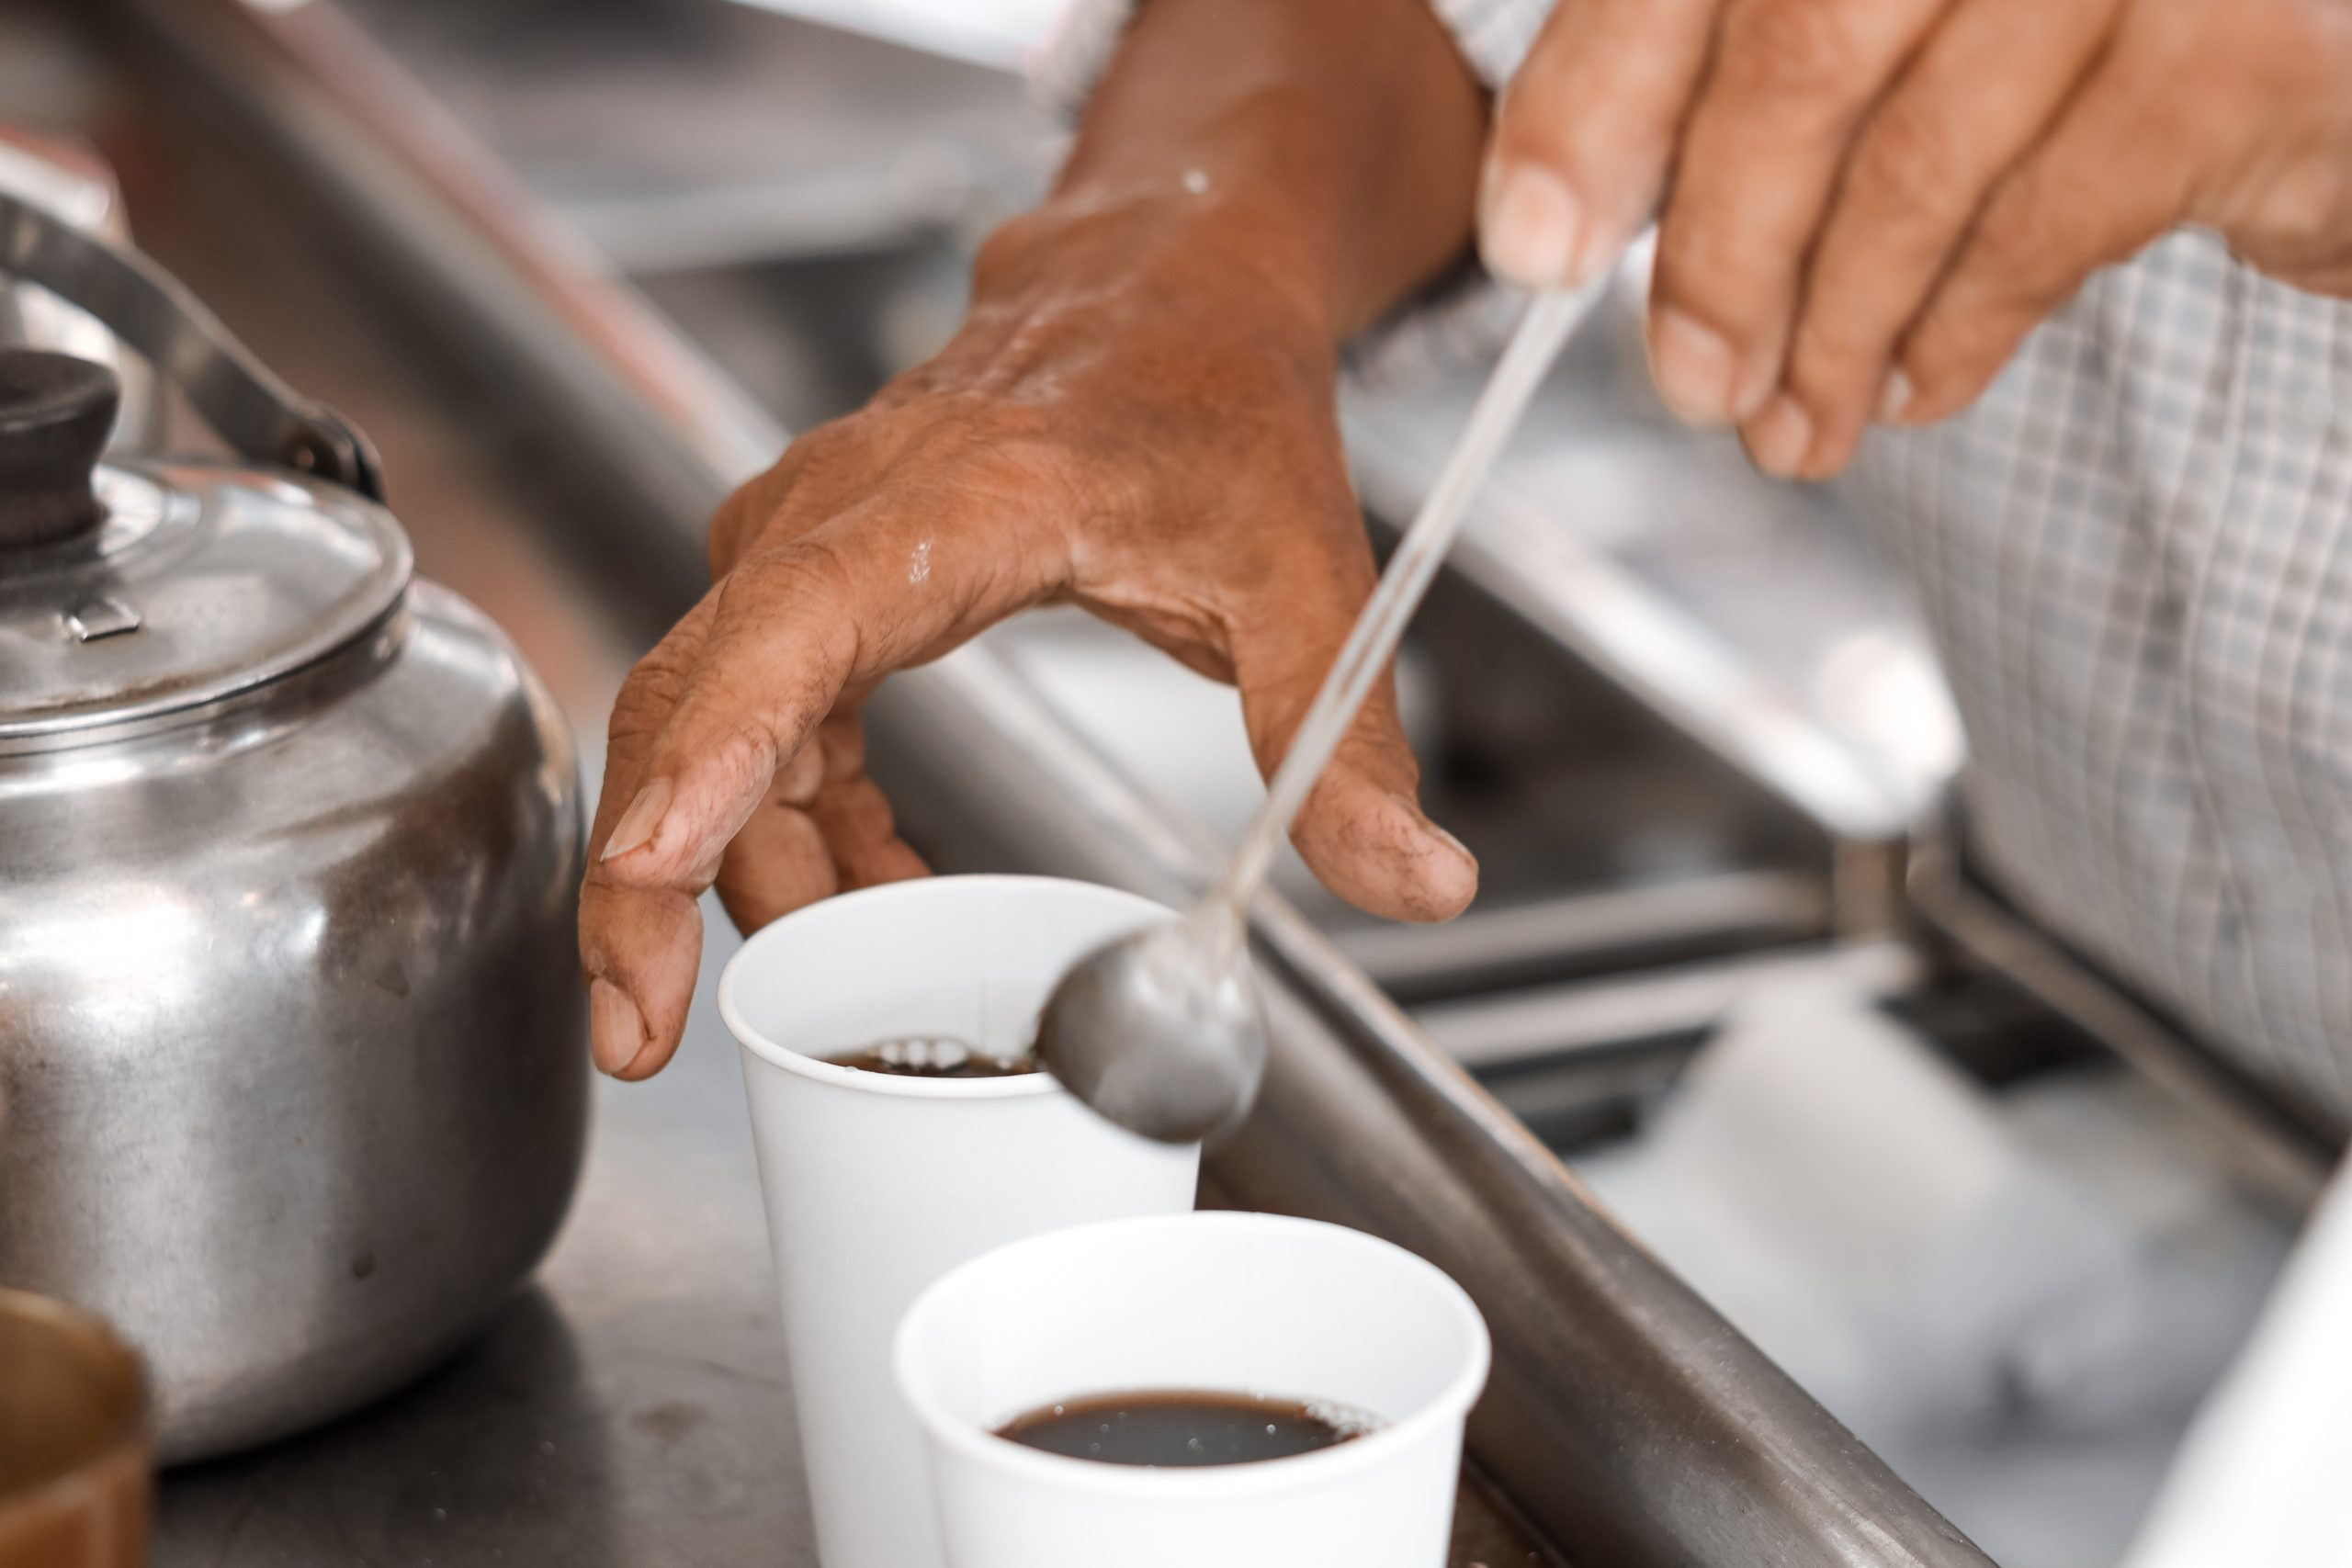 a man holding a spoon to stir a cup of coffee